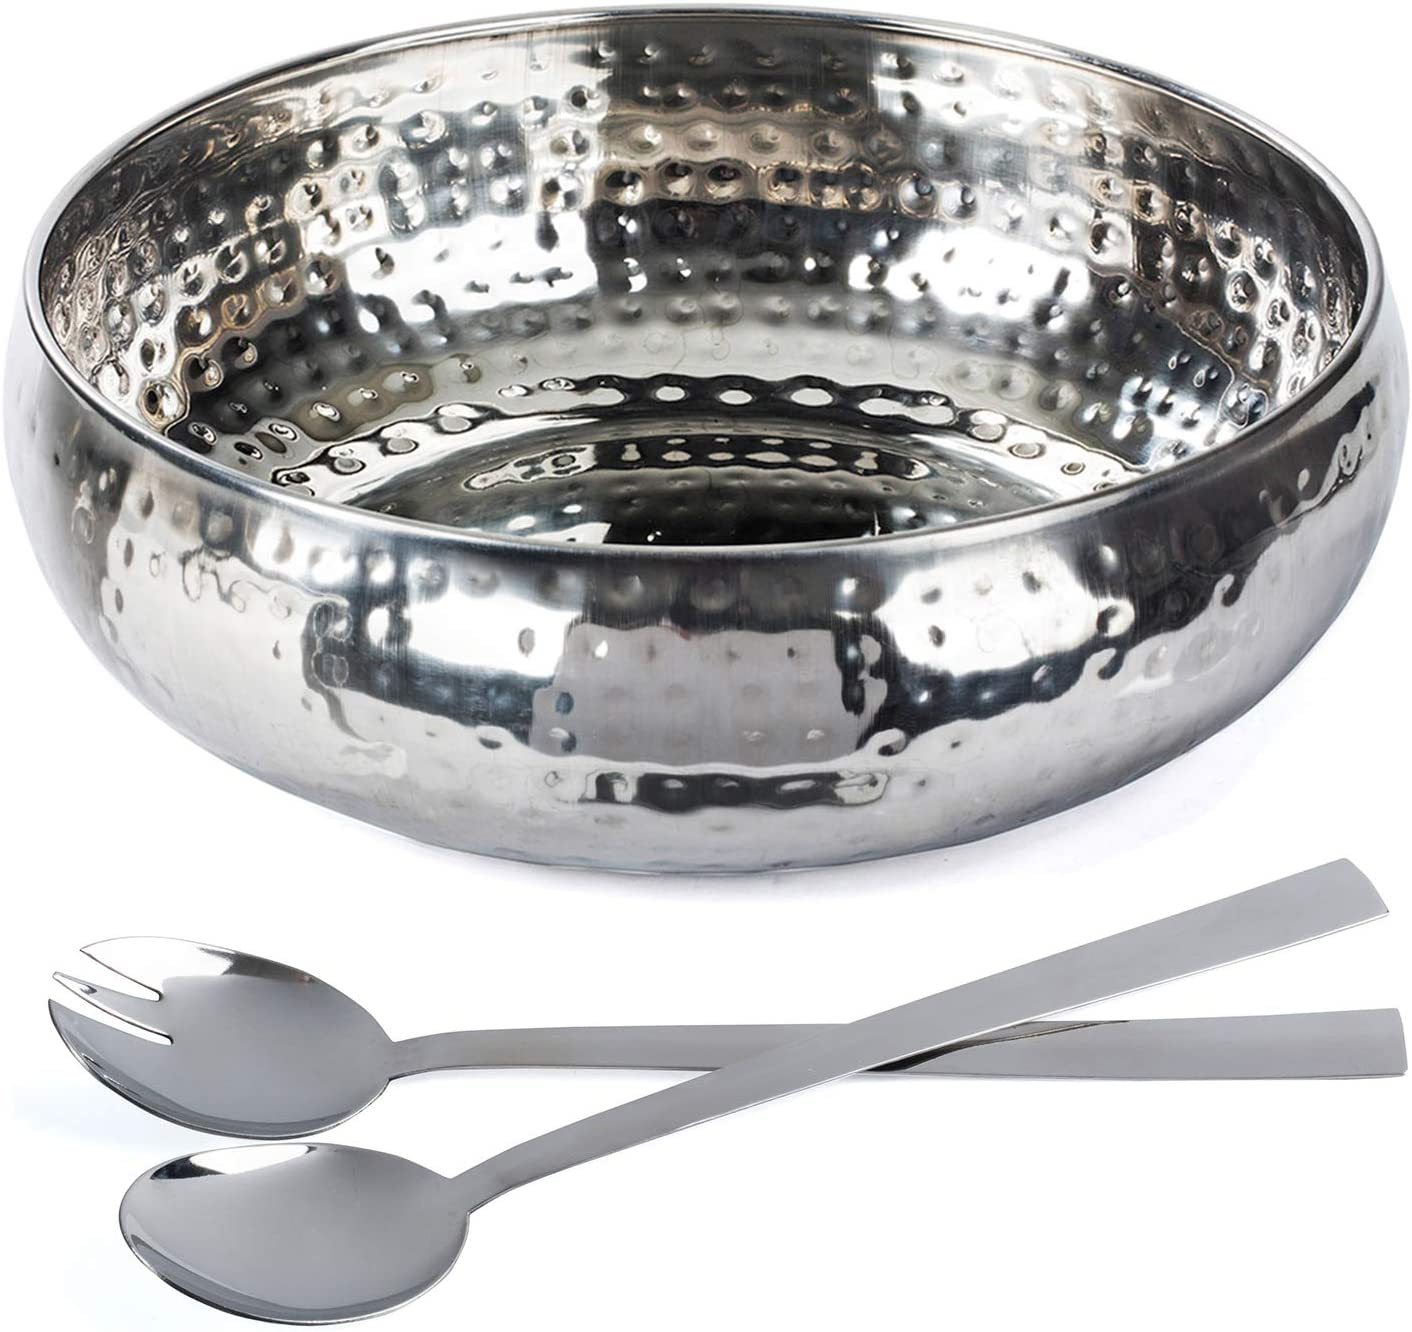 Salad Bowl and Serving Utensils - Hammered Detailing - Stainless Steel - Luxurious Serving Bowl 12